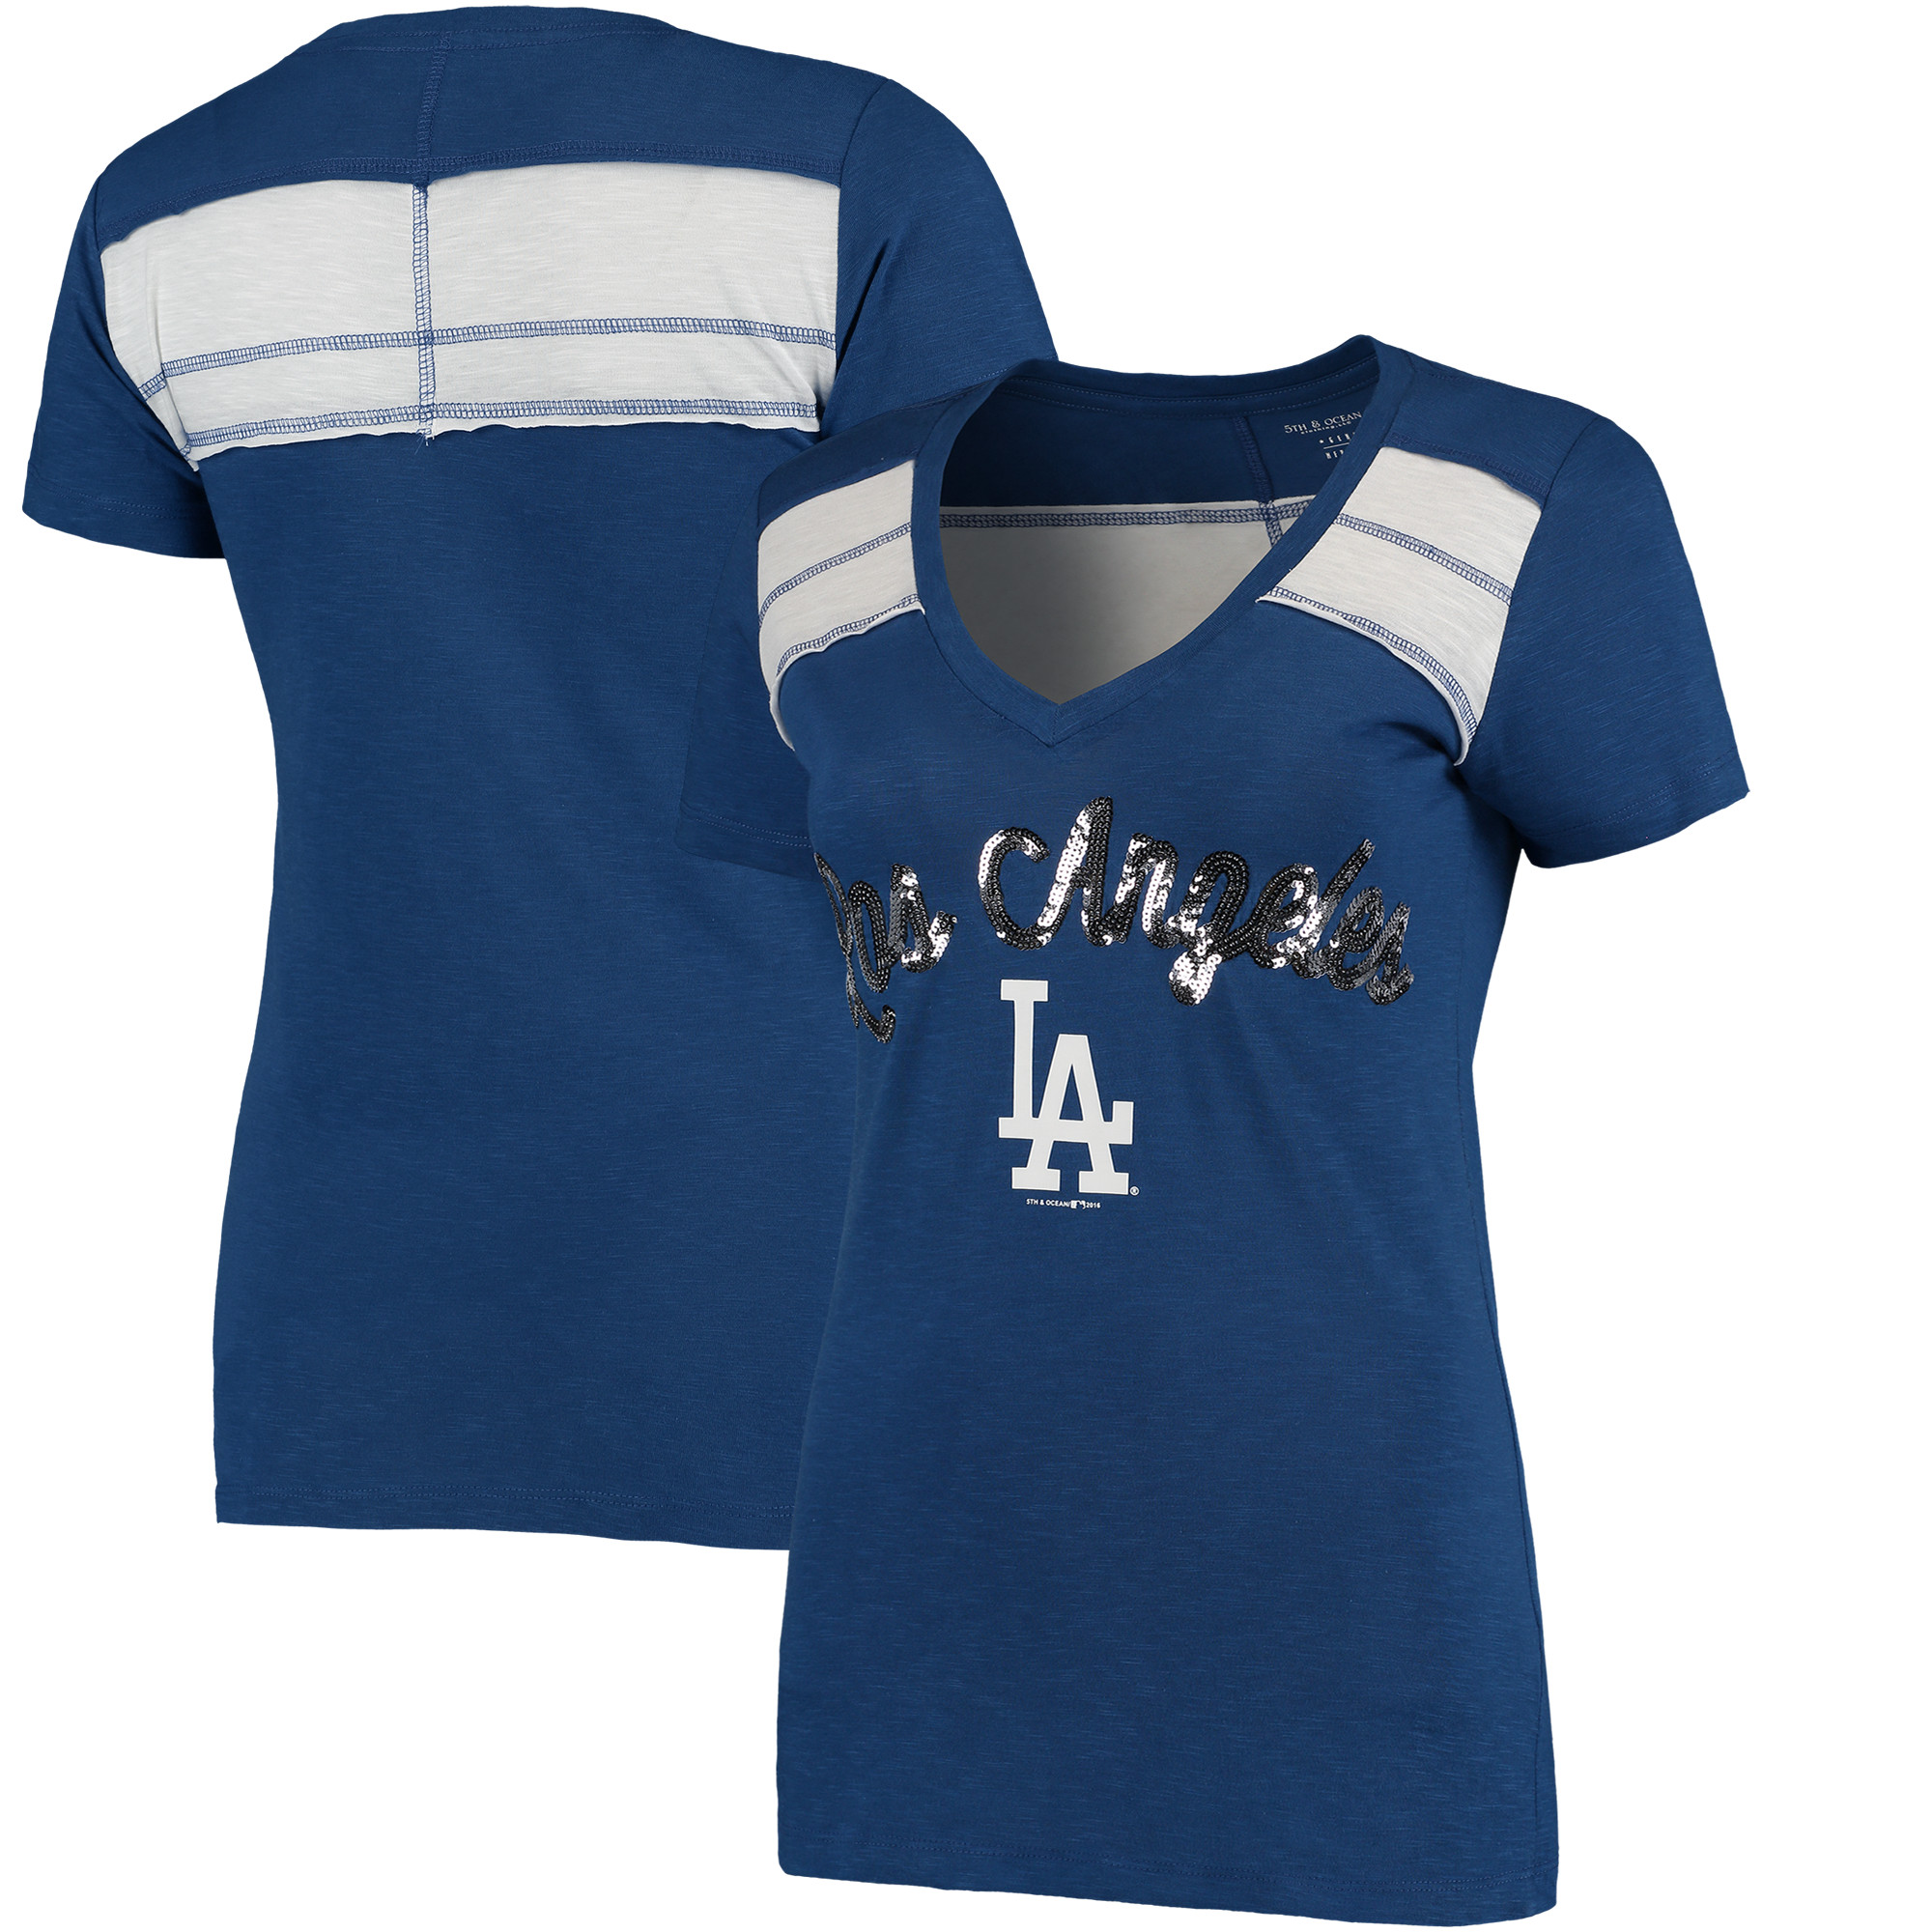 Los Angeles Dodgers 5th & Ocean by New Era Women's MLB Slub V-Neck With Contrast Inserts T-Shirt - Heathered Royal